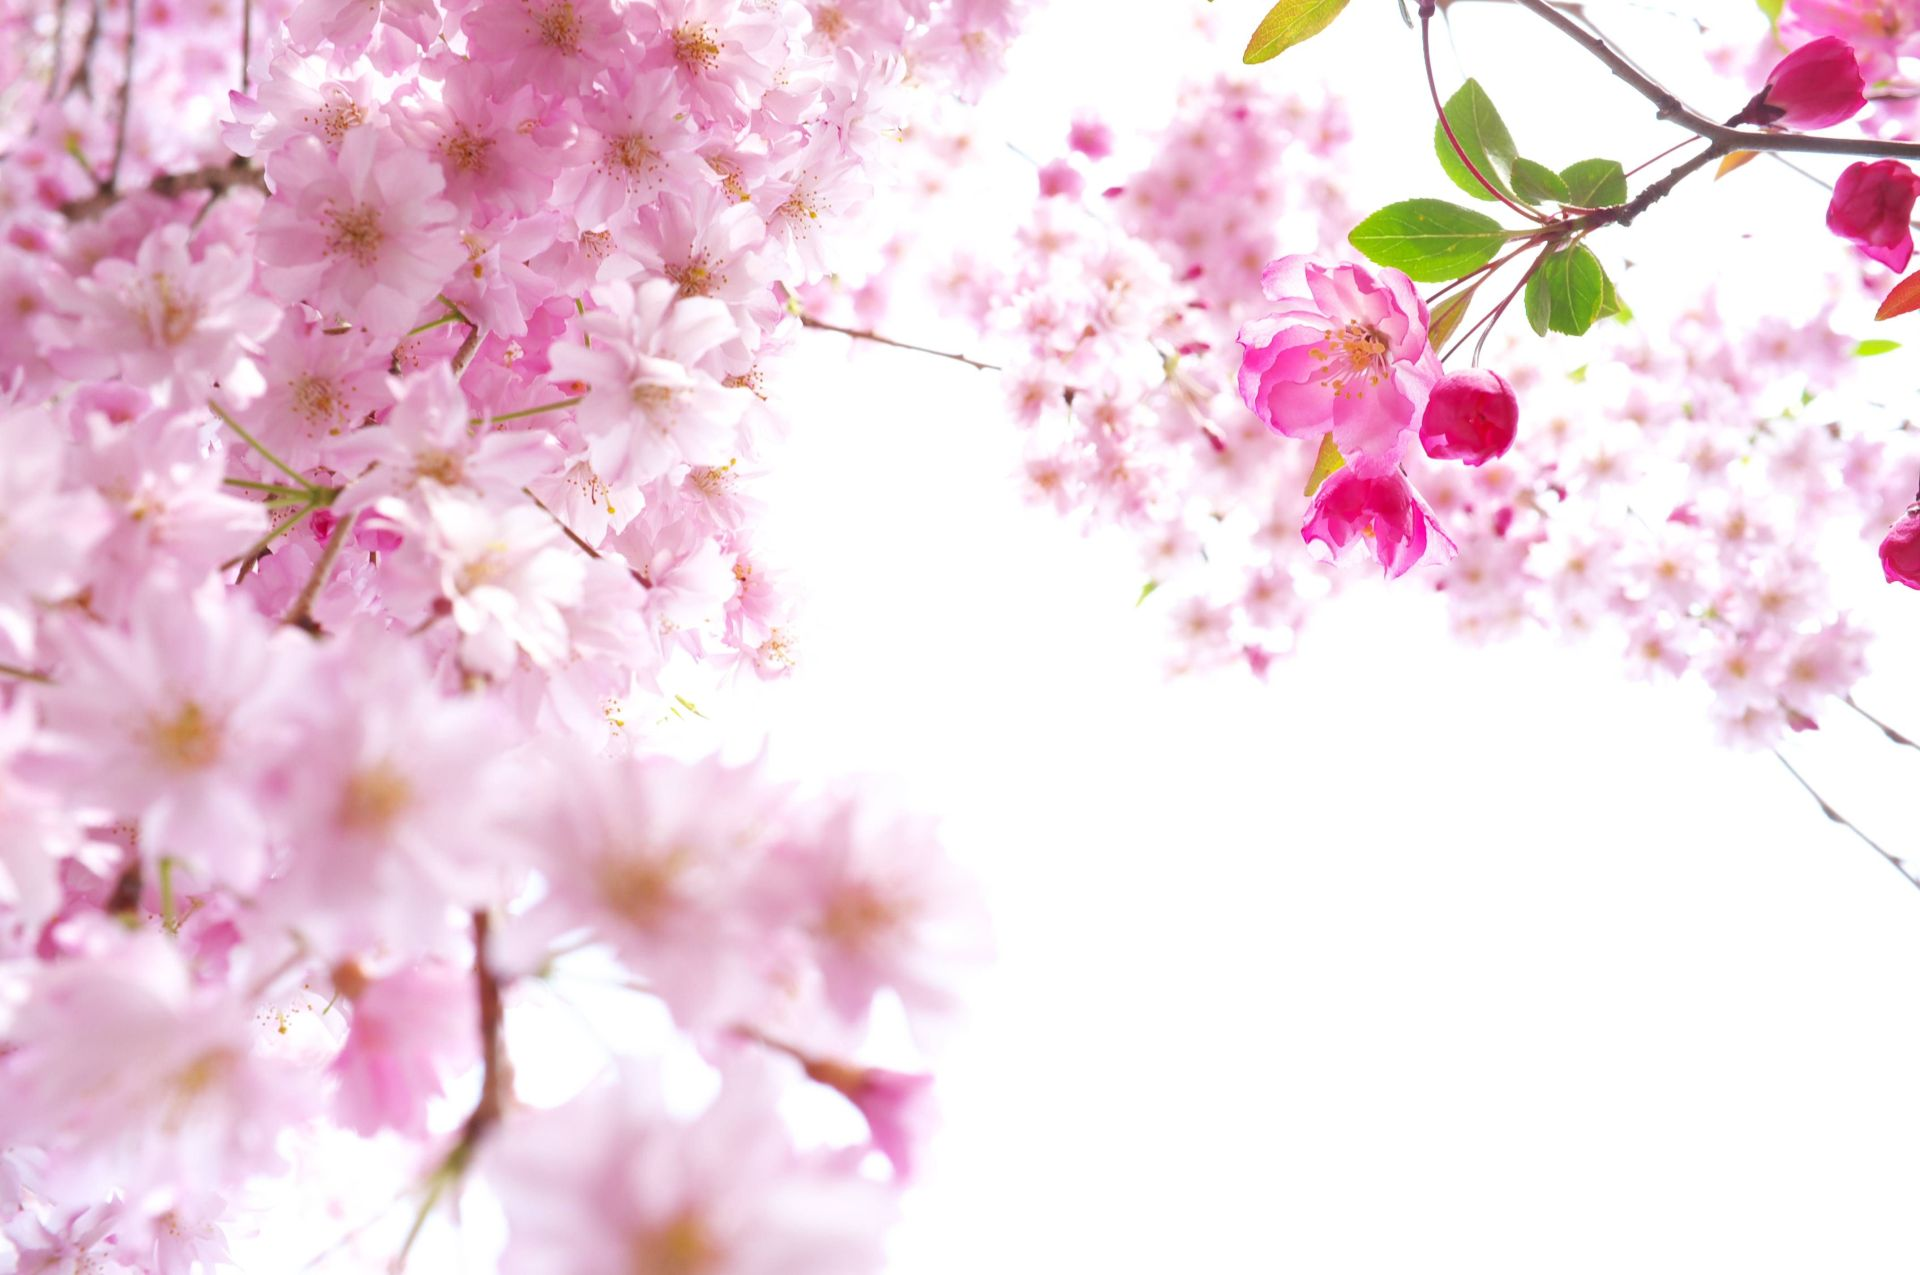 Cherry Blossom Wallpapers and Pictures